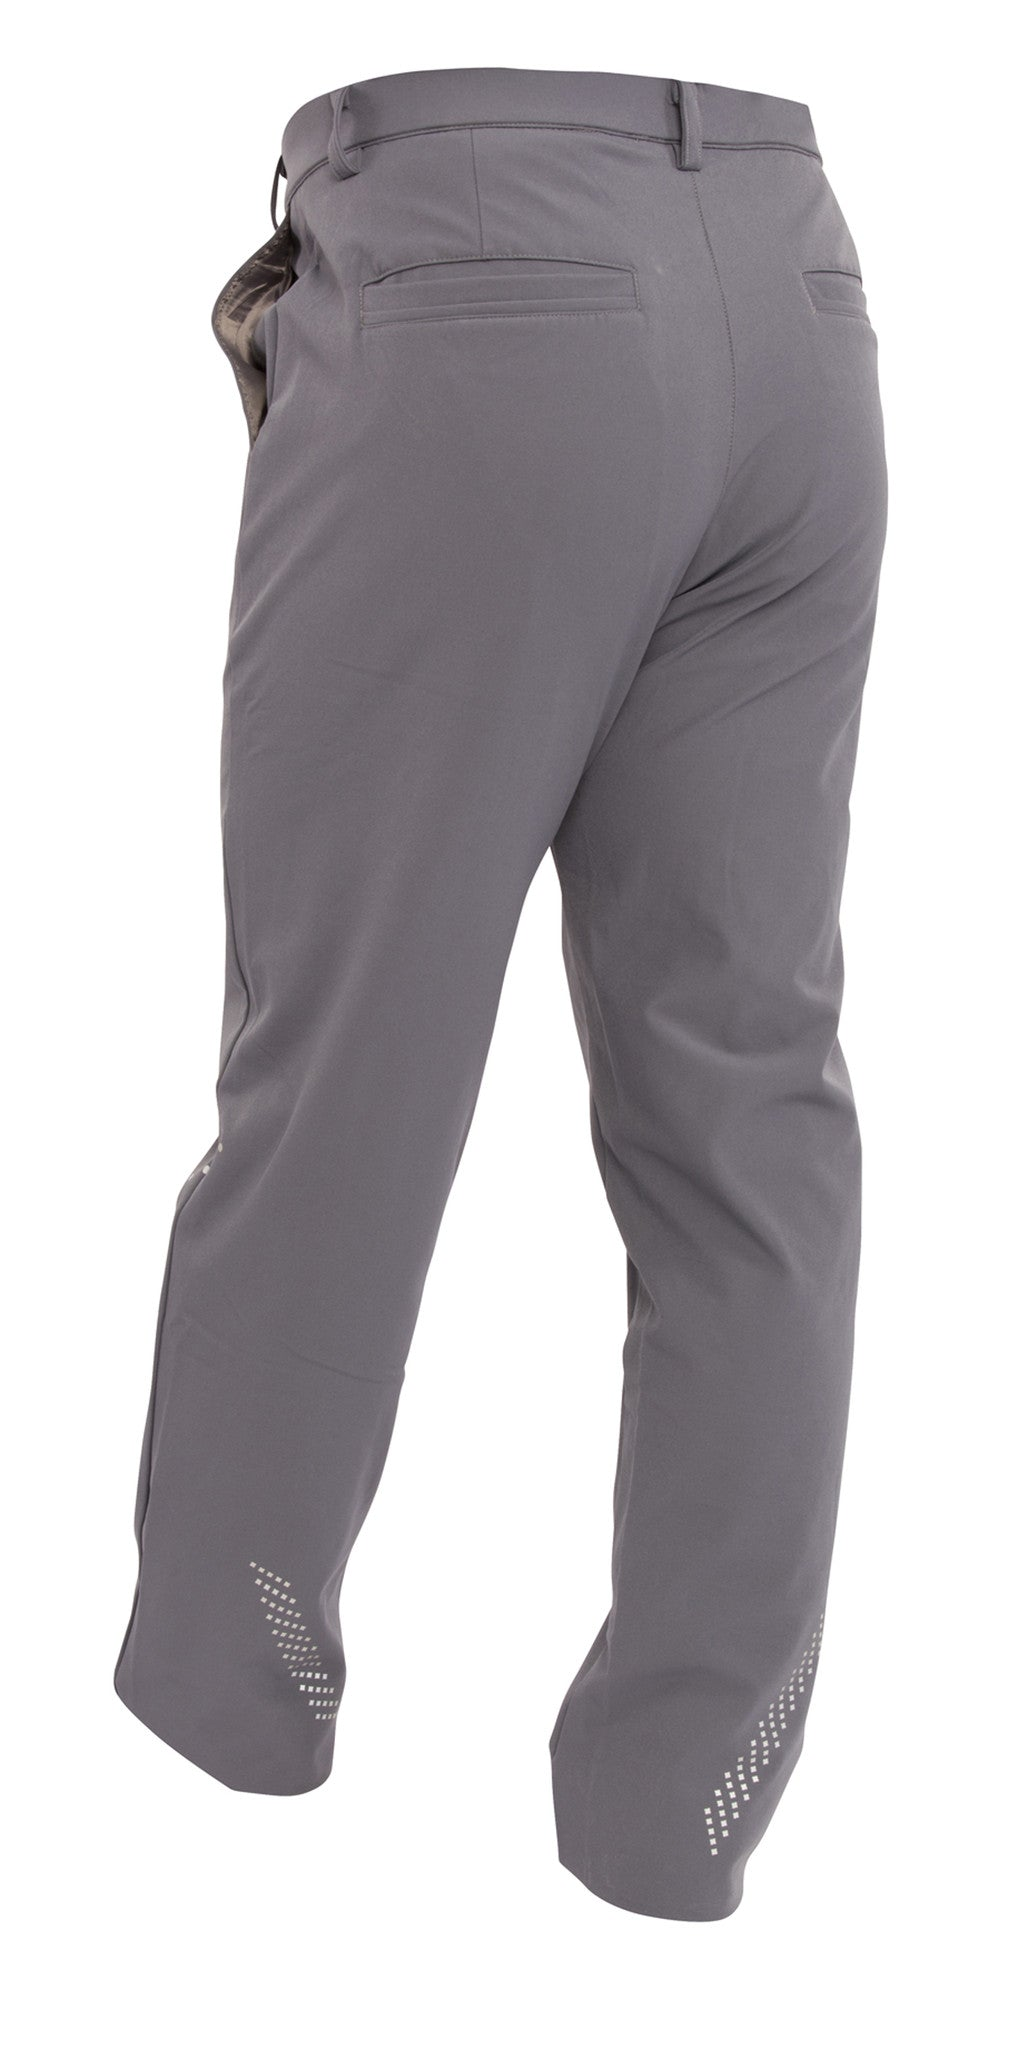 URBANITE - Mens Activewear Pants